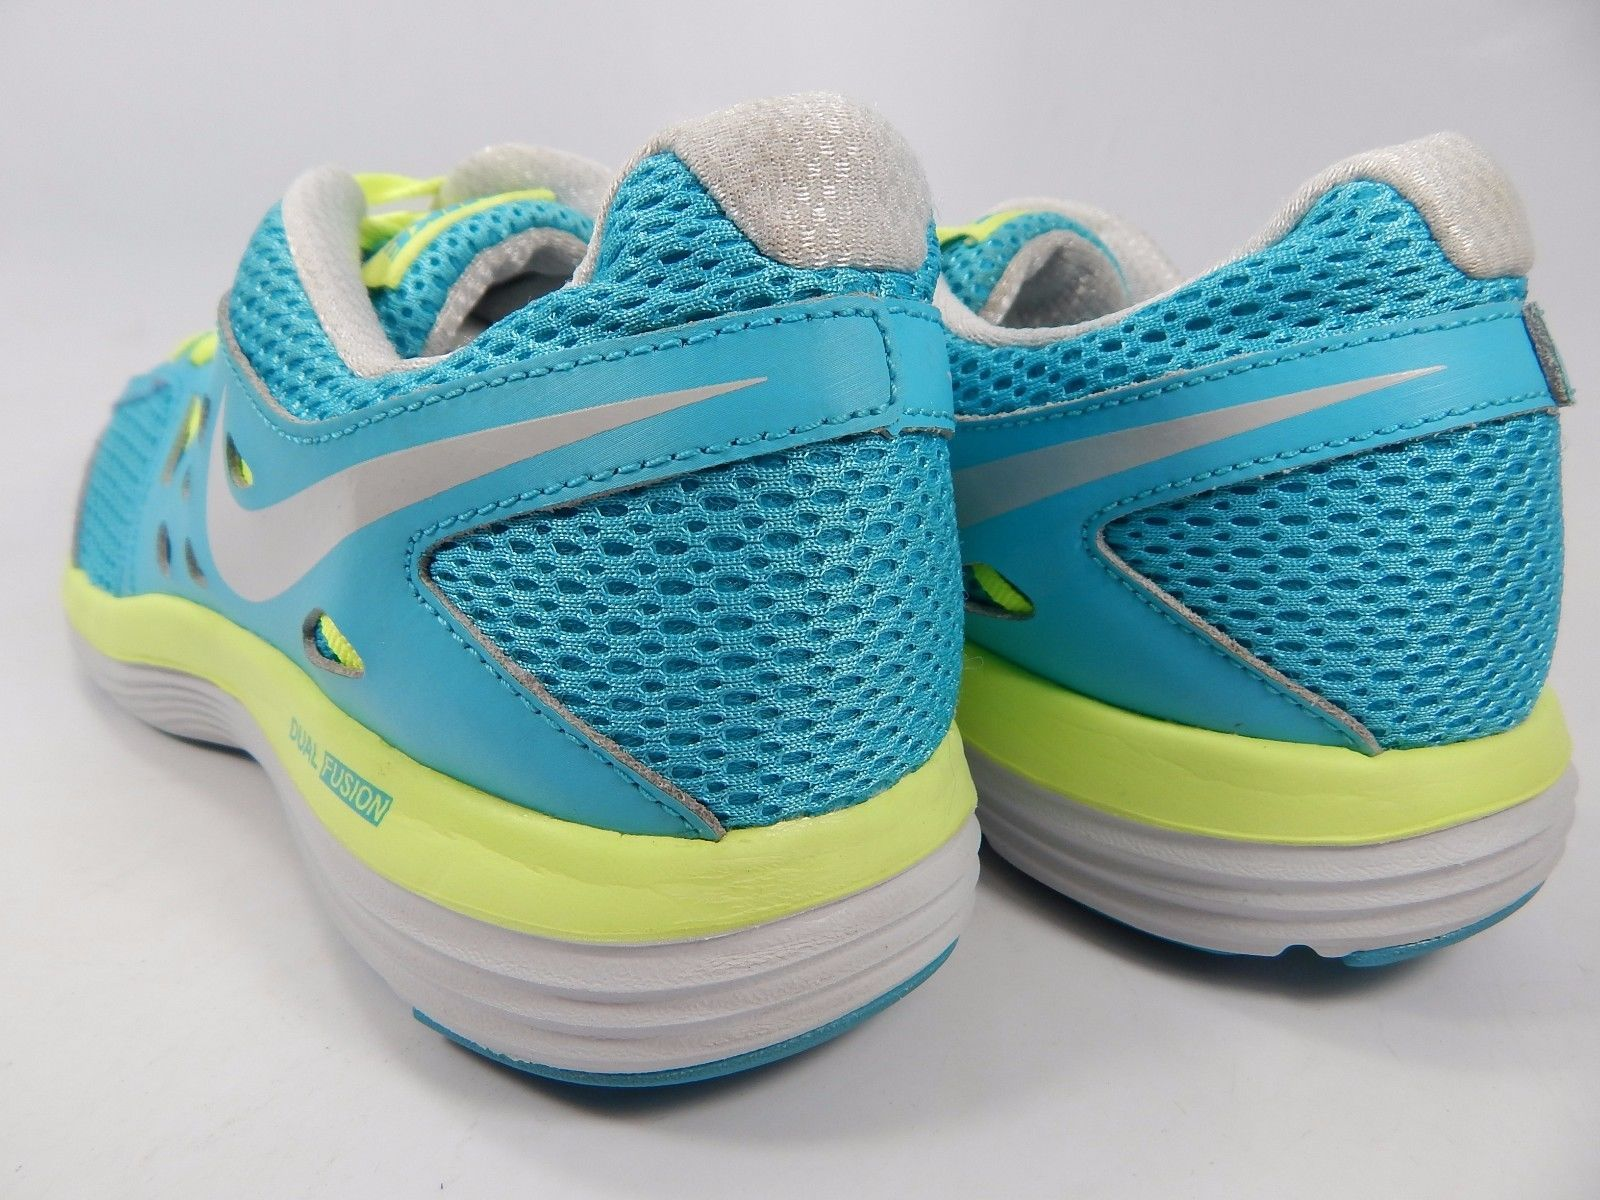 Nike Dual Fusion Lite Women's Running Shoes Sz US 9 M (B) EU 40.5 599560-403